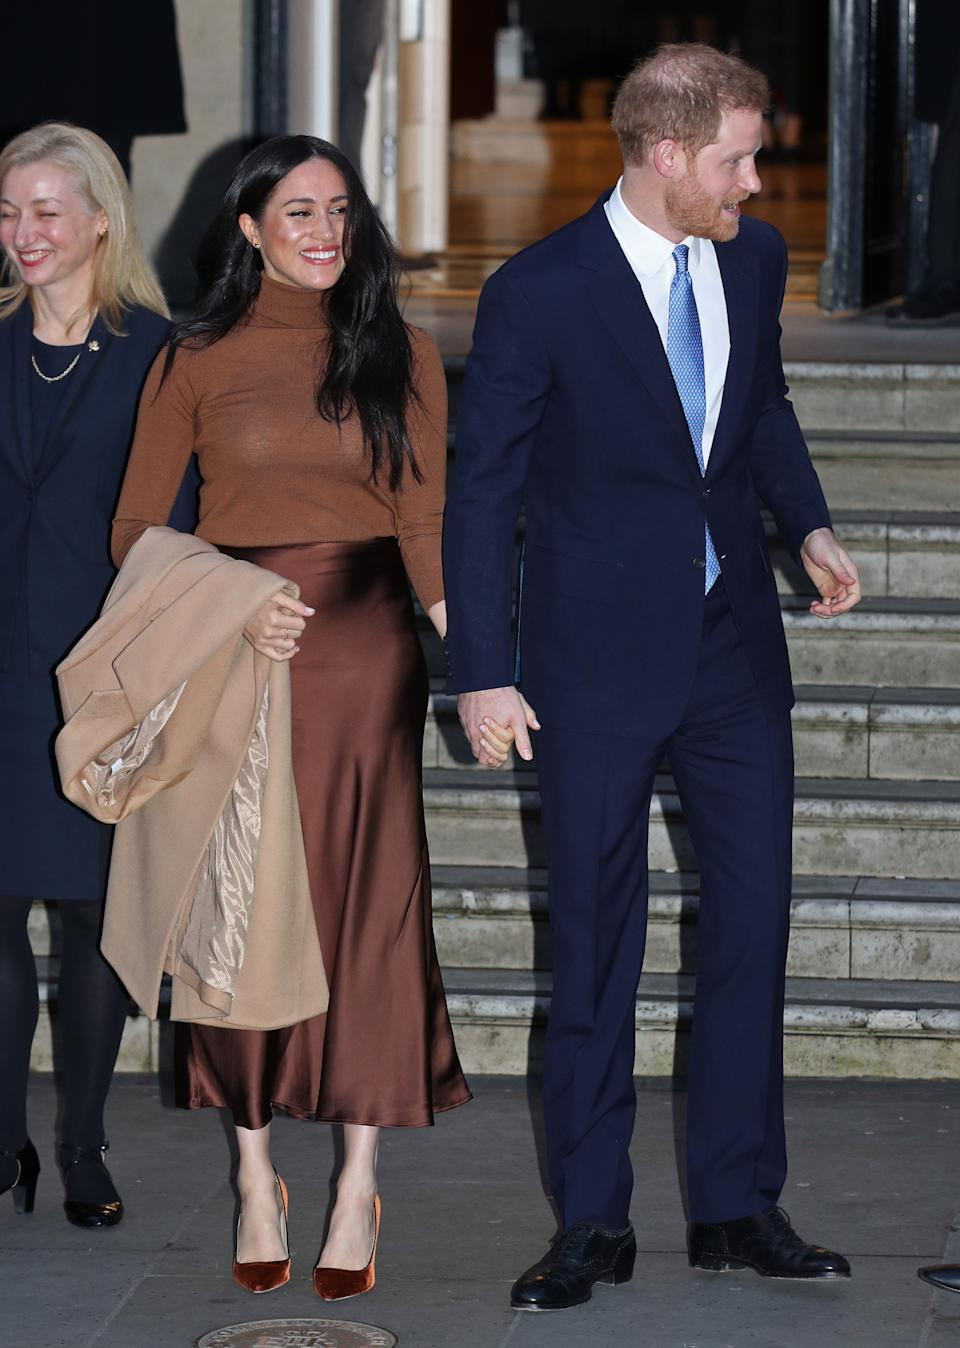 The Duke and Duchess of Sussex leaving after their visit to Canada House, central London, to meet with Canada's High Commissioner to the UK, Janice Charette, as well as staff, to thank them for the warm hospitality and support they received during their recent stay in Canada. Picture date: Tuesday January 7, 2020. Photo credit should read: Yui Mok/PA Wire PA (Photo by Yui Mok/PA Images via Getty Images)